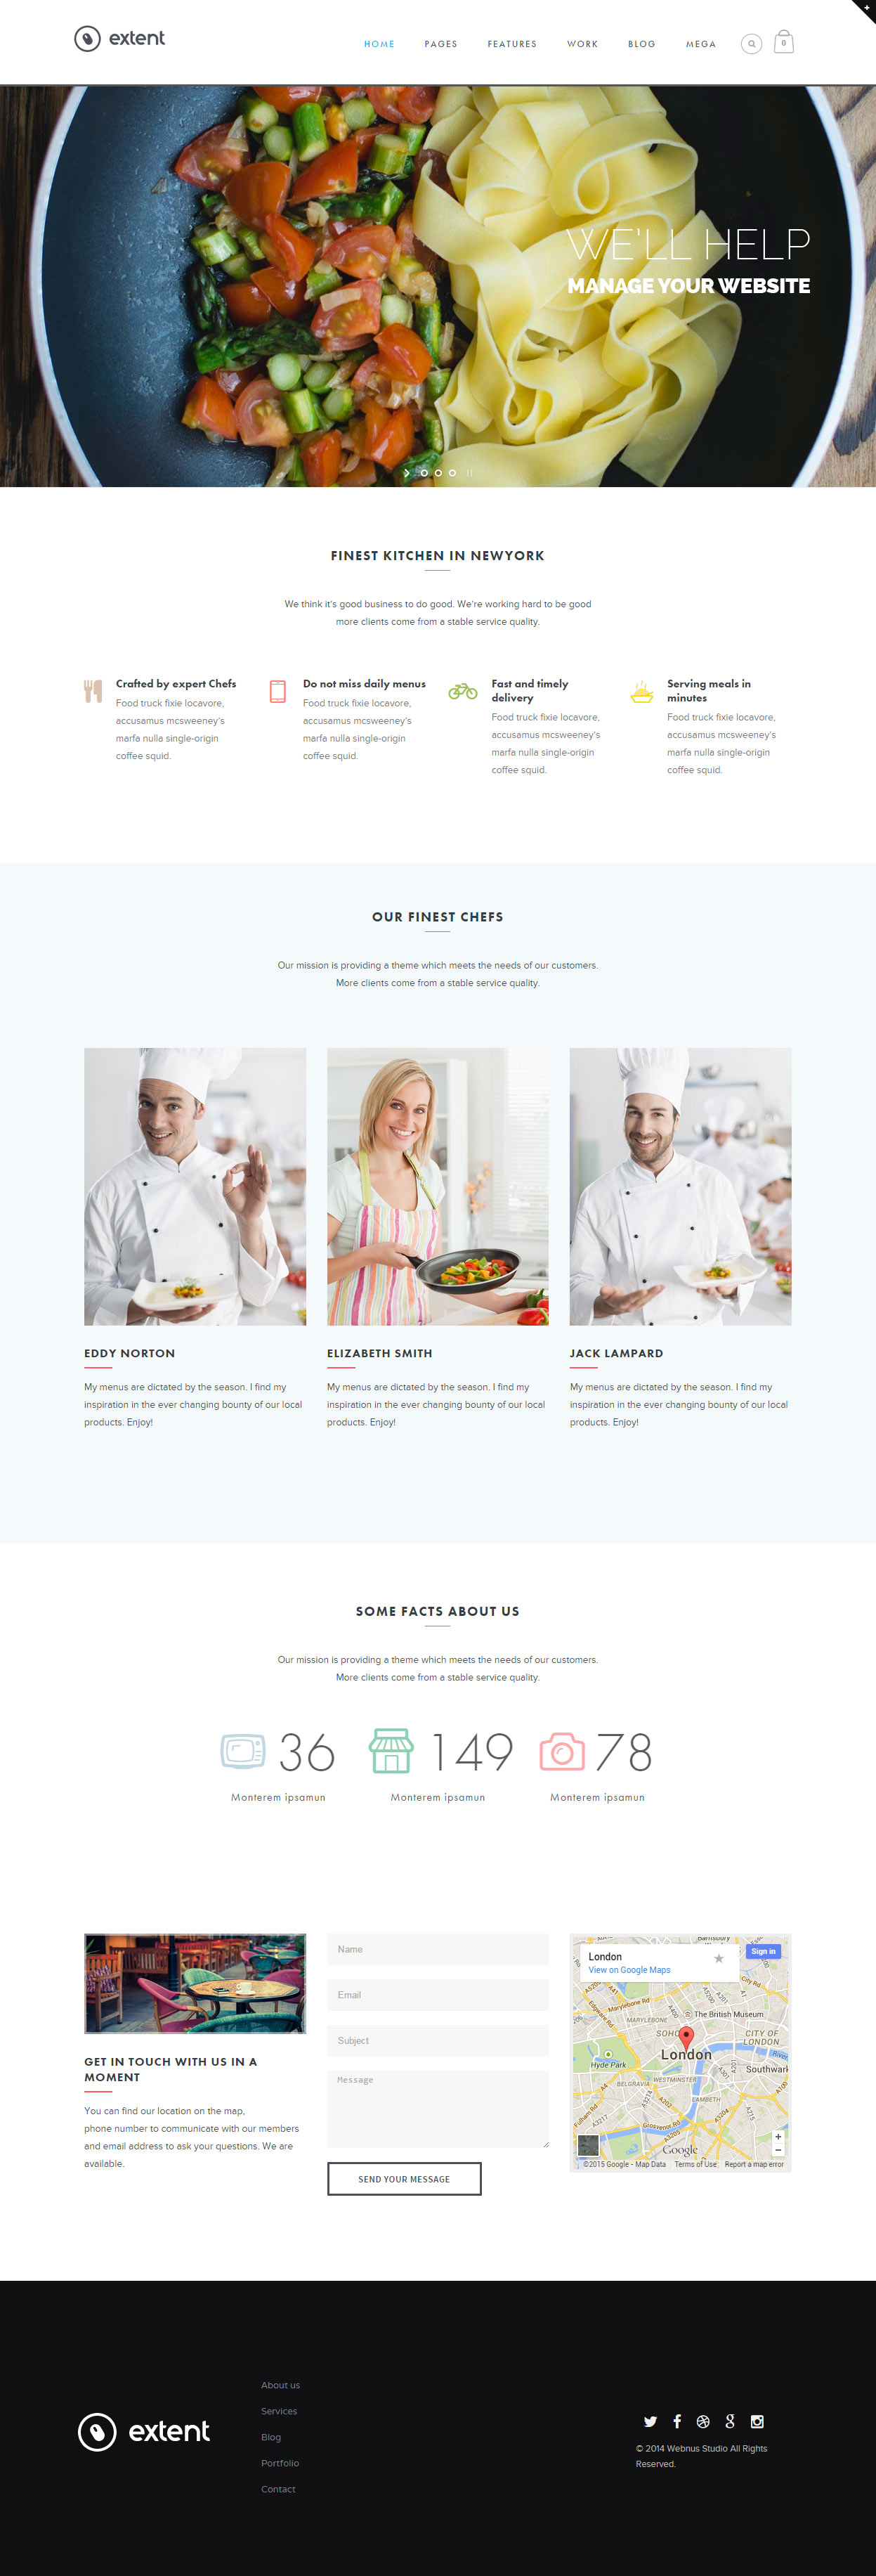 25 best responsive html5 food website templates in 2017 extent food website templates pronofoot35fo Choice Image